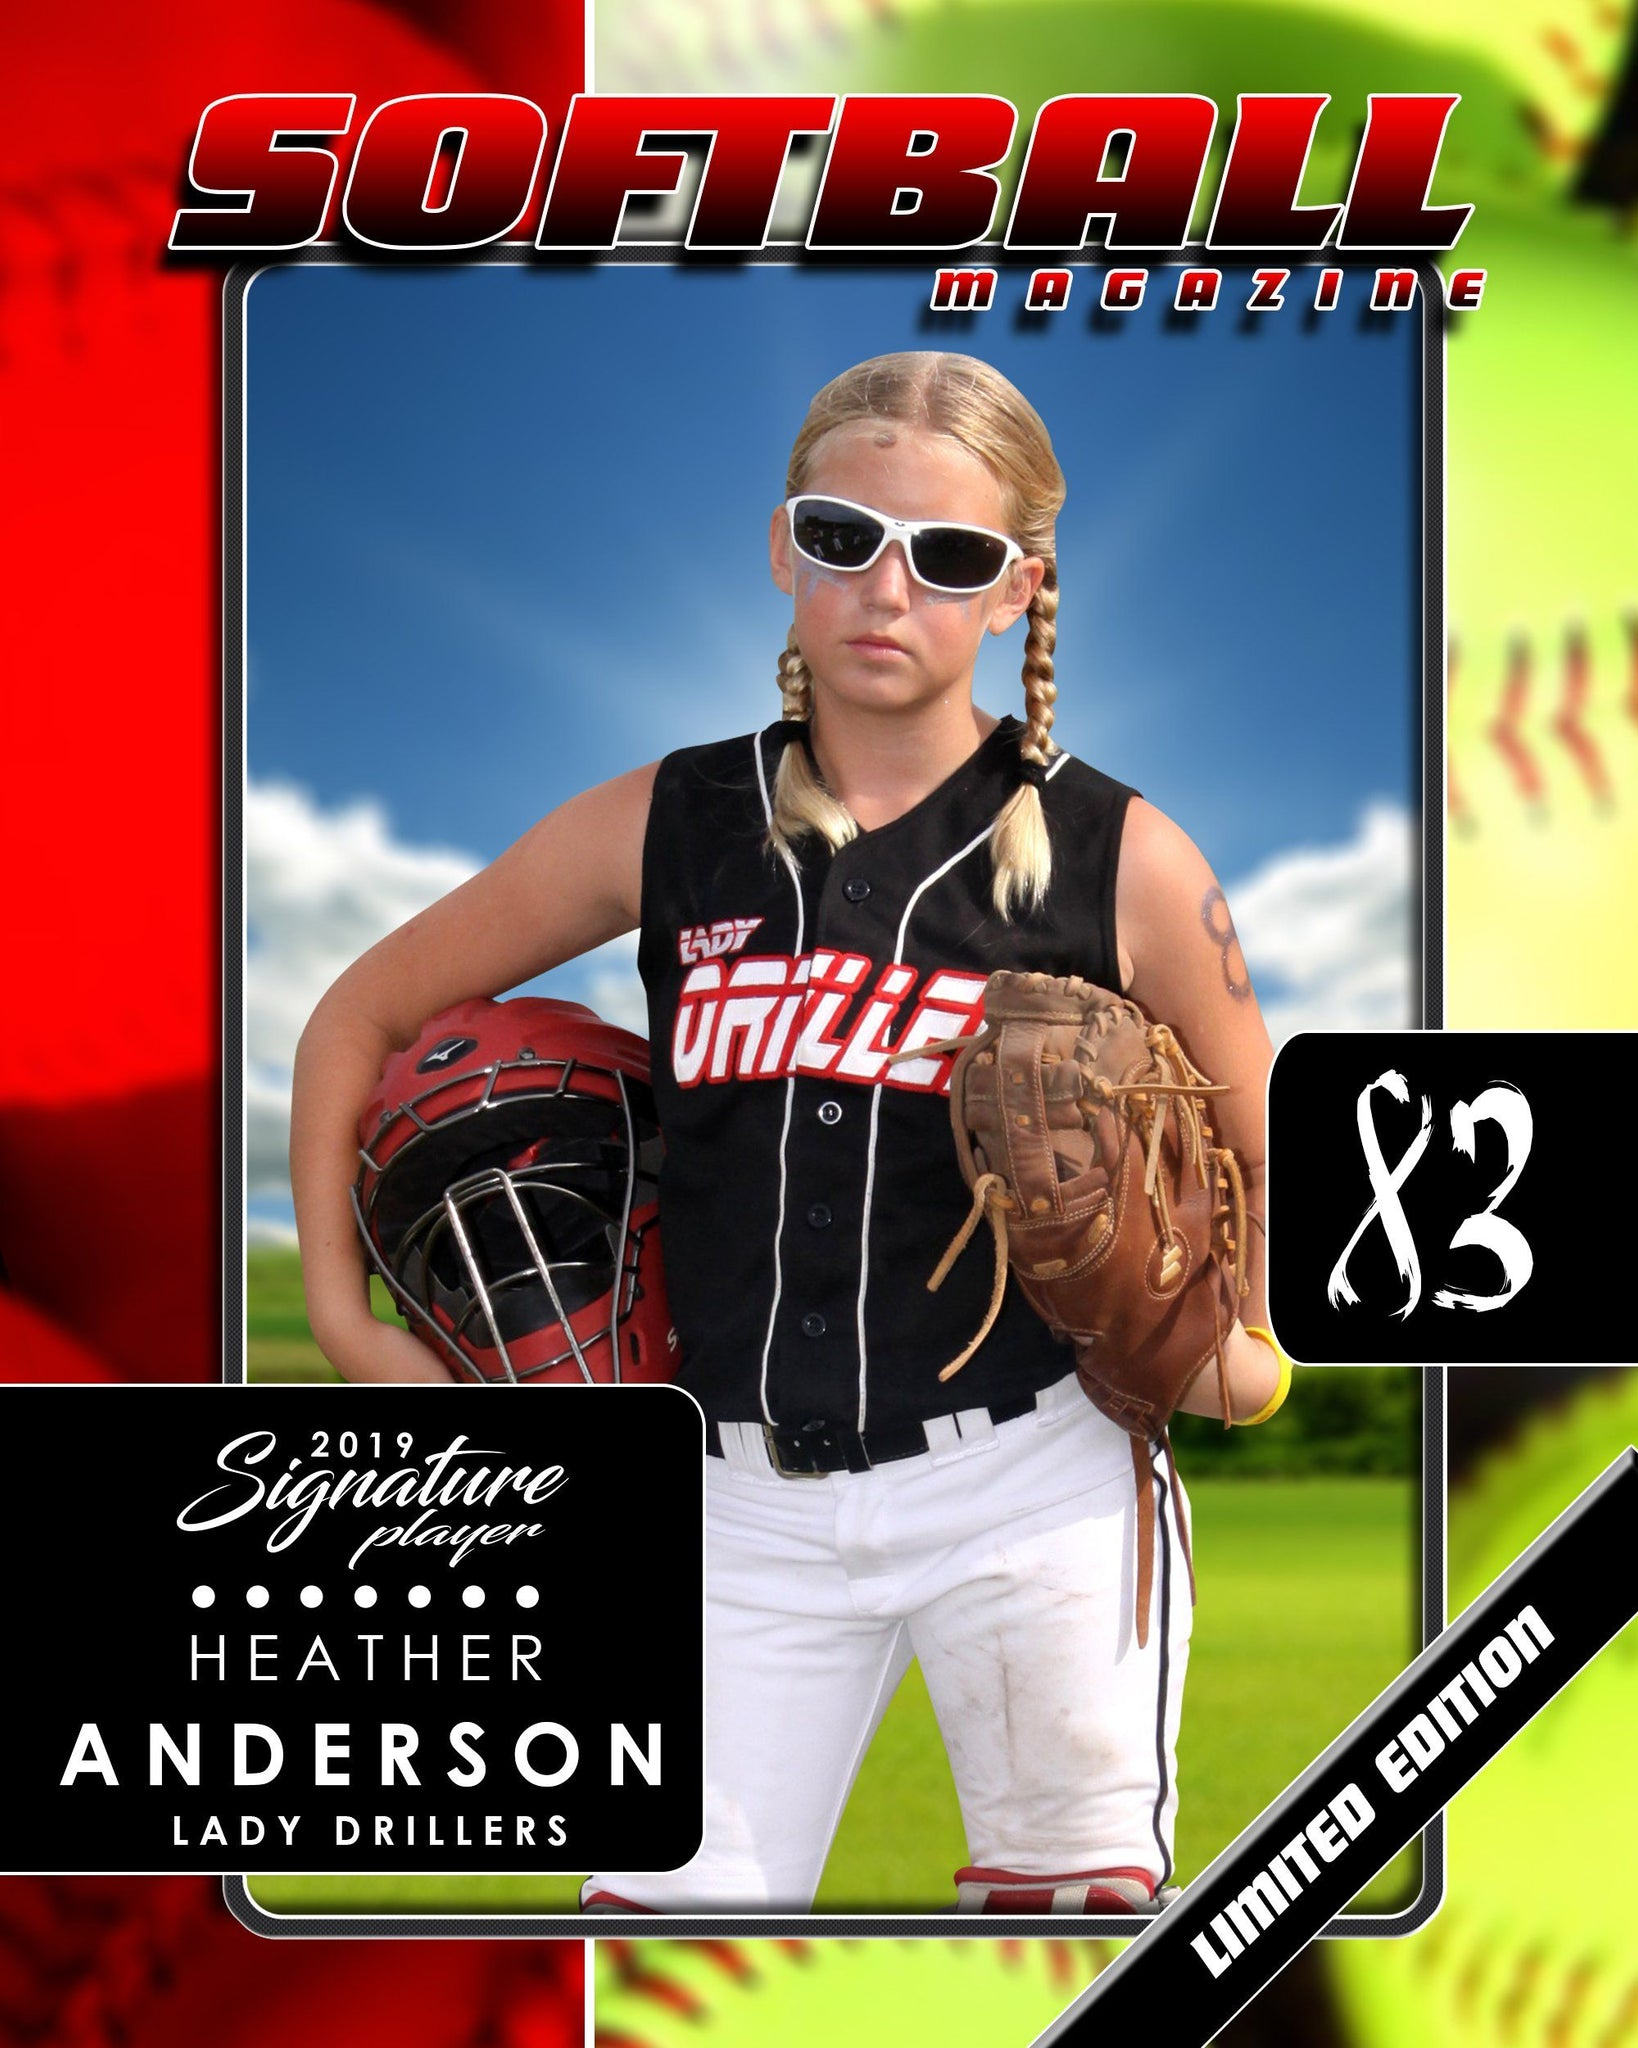 Signature Player - Softball - V1 - Drop-In Magazine Cover Template-Photoshop Template - Photo Solutions